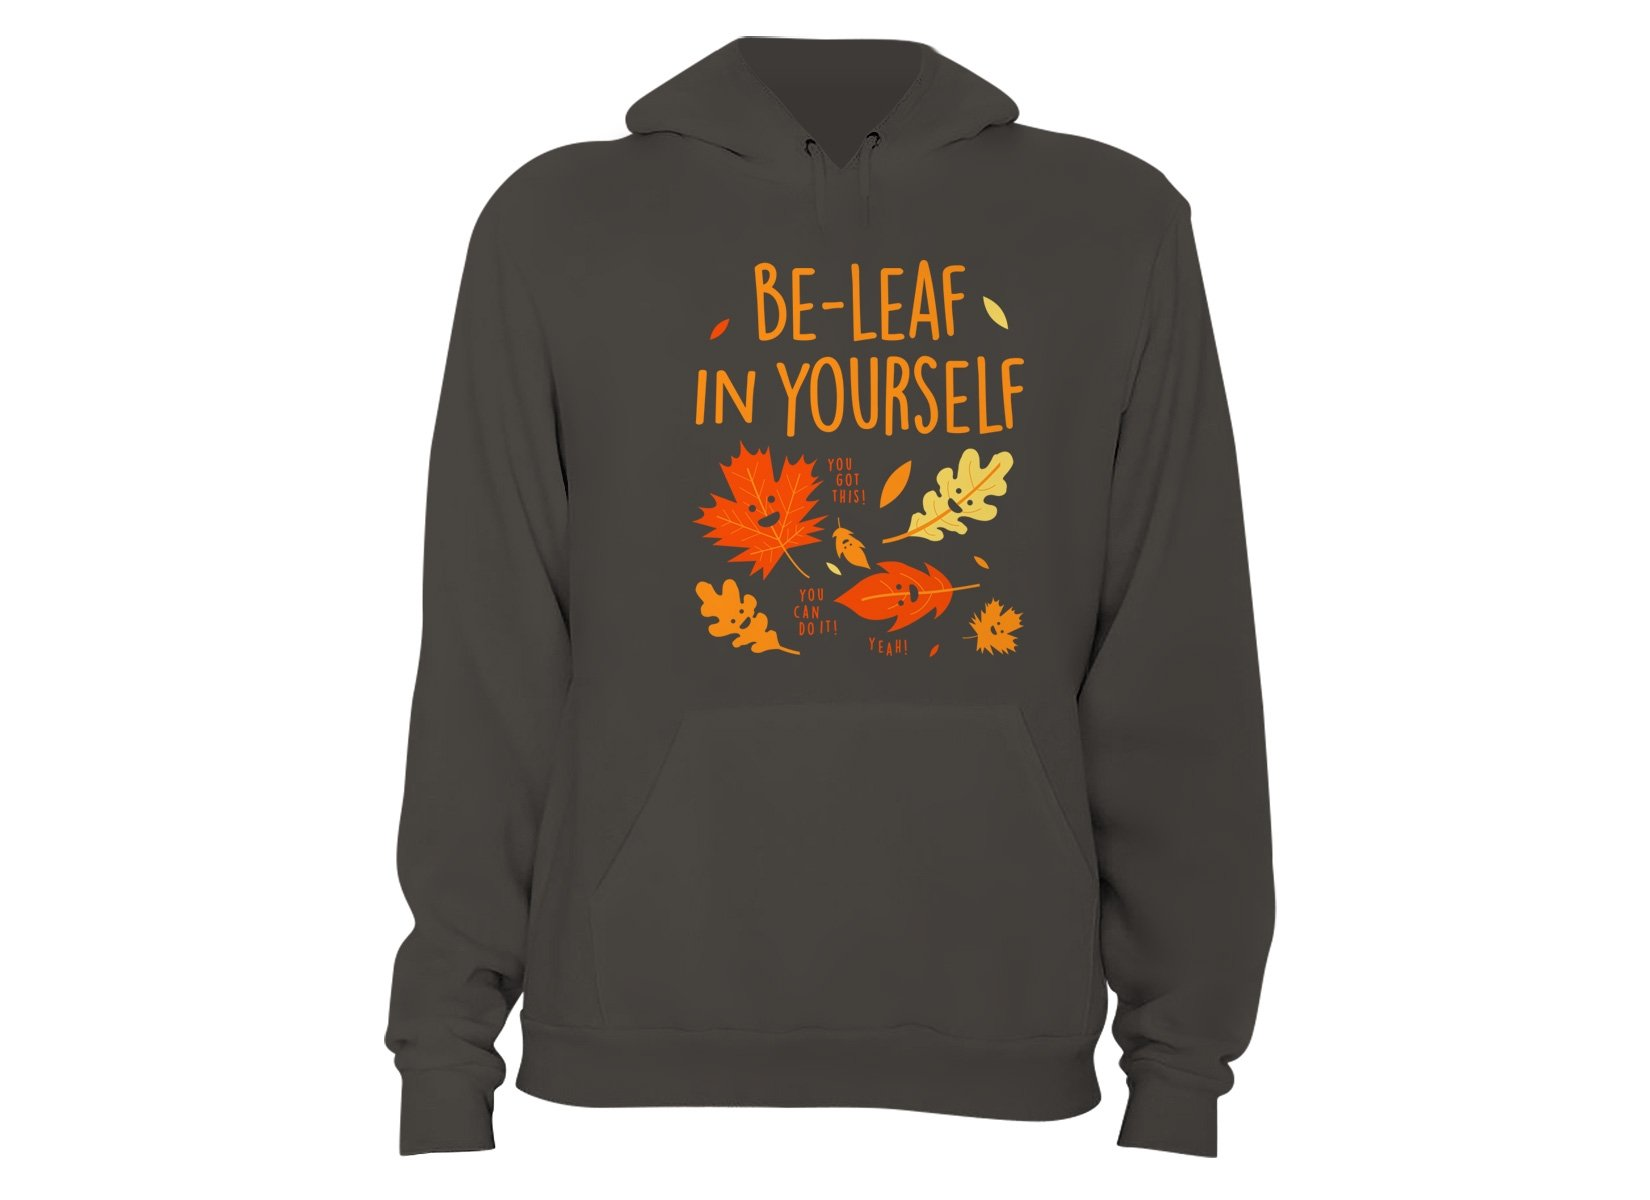 Be-Leaf In Yourself on Hoodie